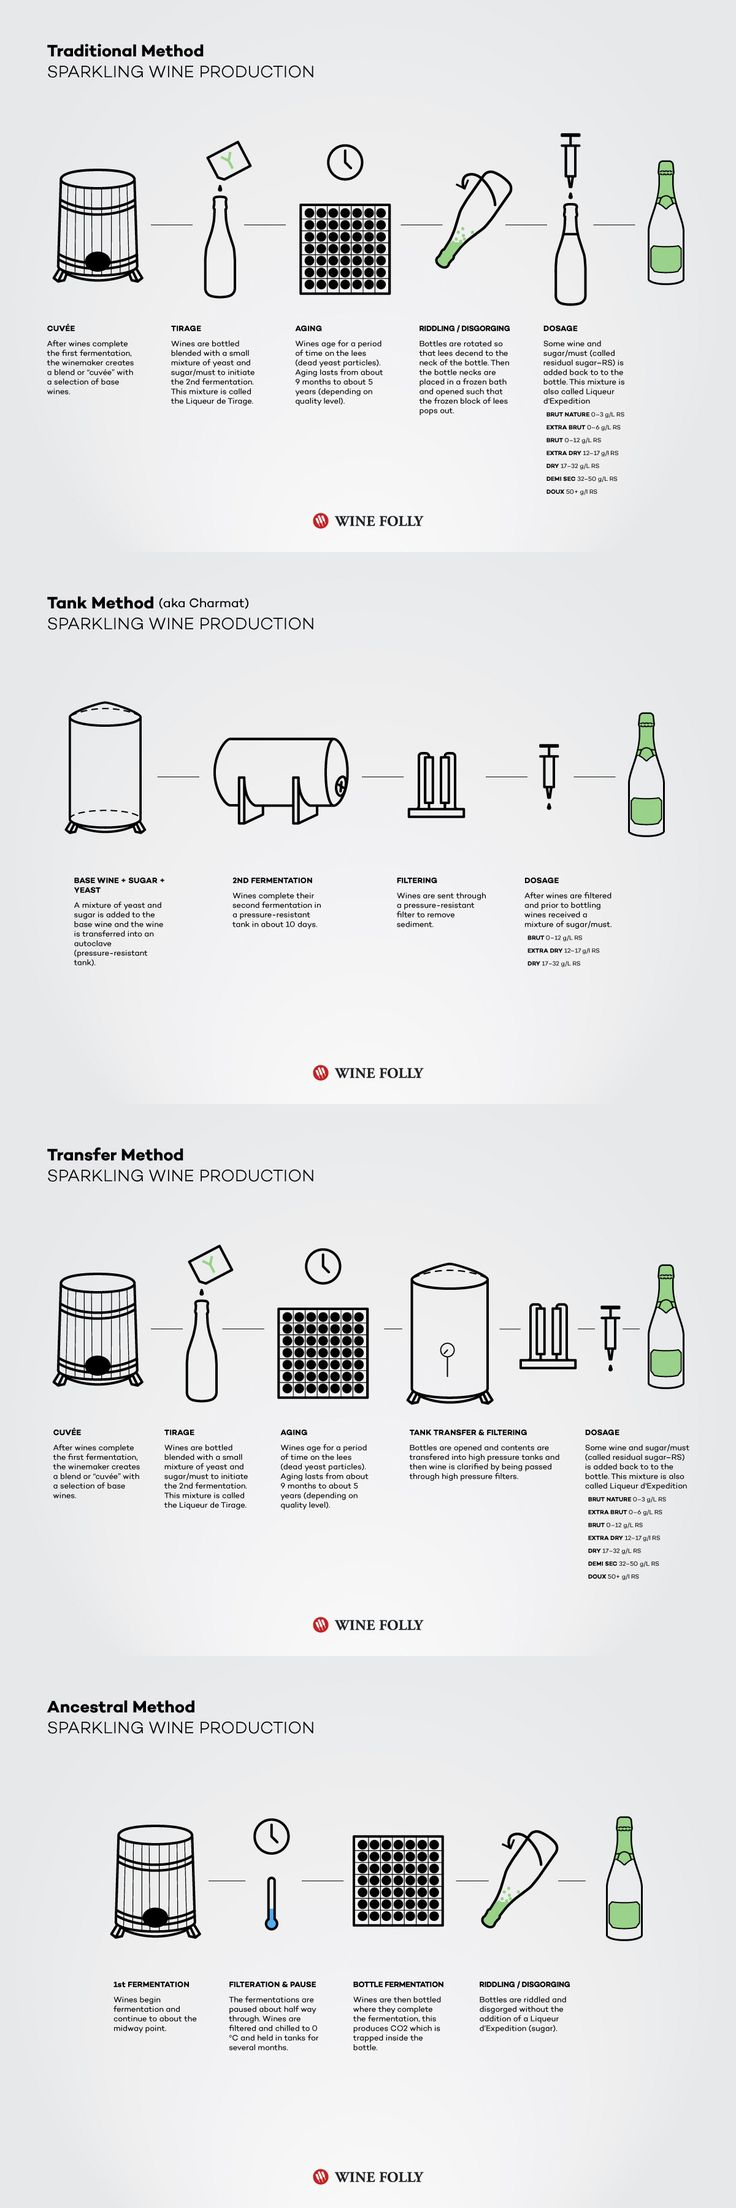 Different methods for making sparkling wine including Champagne, Prosecco and Cava #Wine #Wineeducation #Sparkling